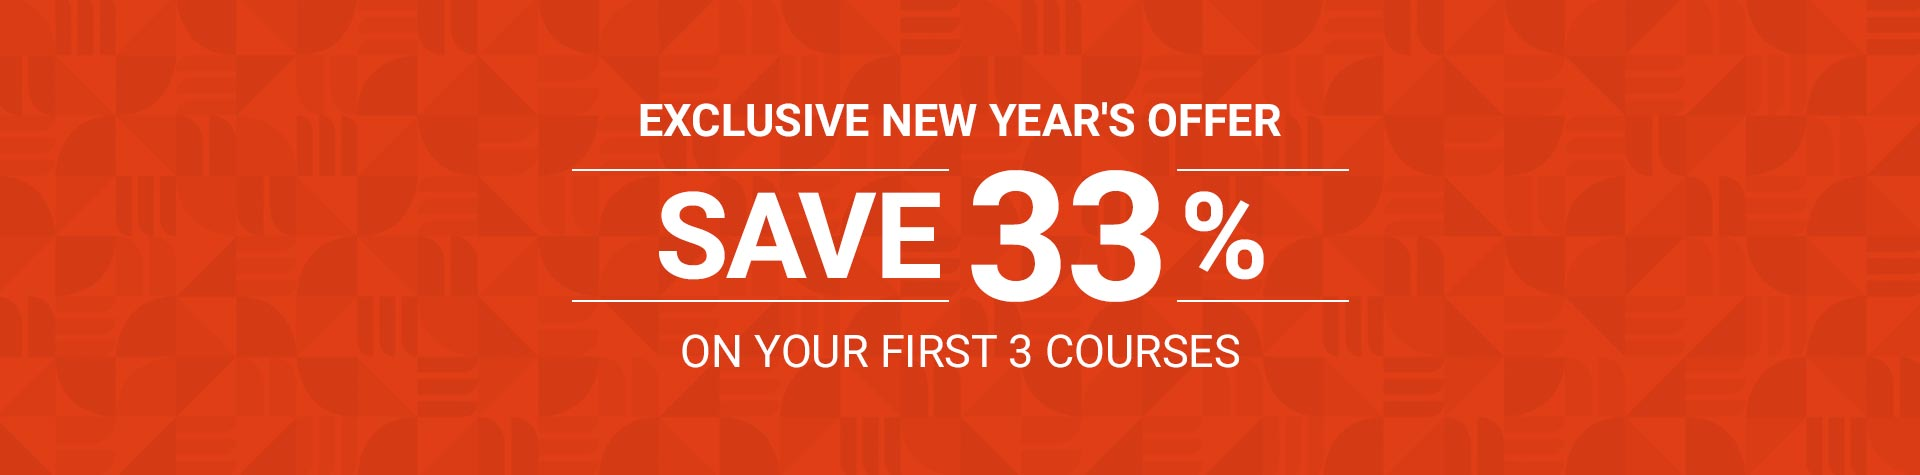 Exclusive New Year's Offer - Save 33% on your first 3 courses